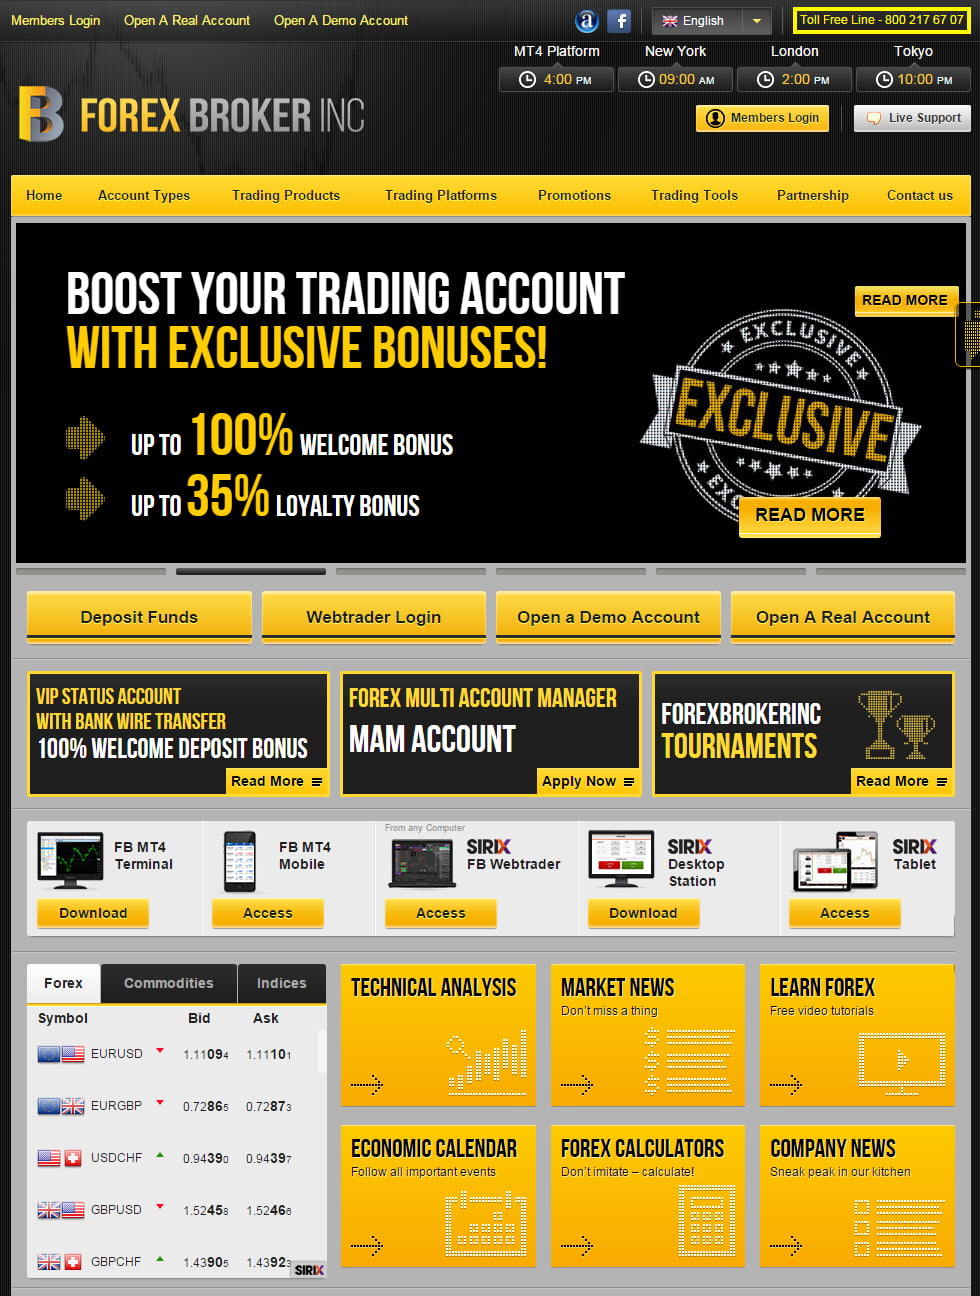 Approved forex brokerage in singapore